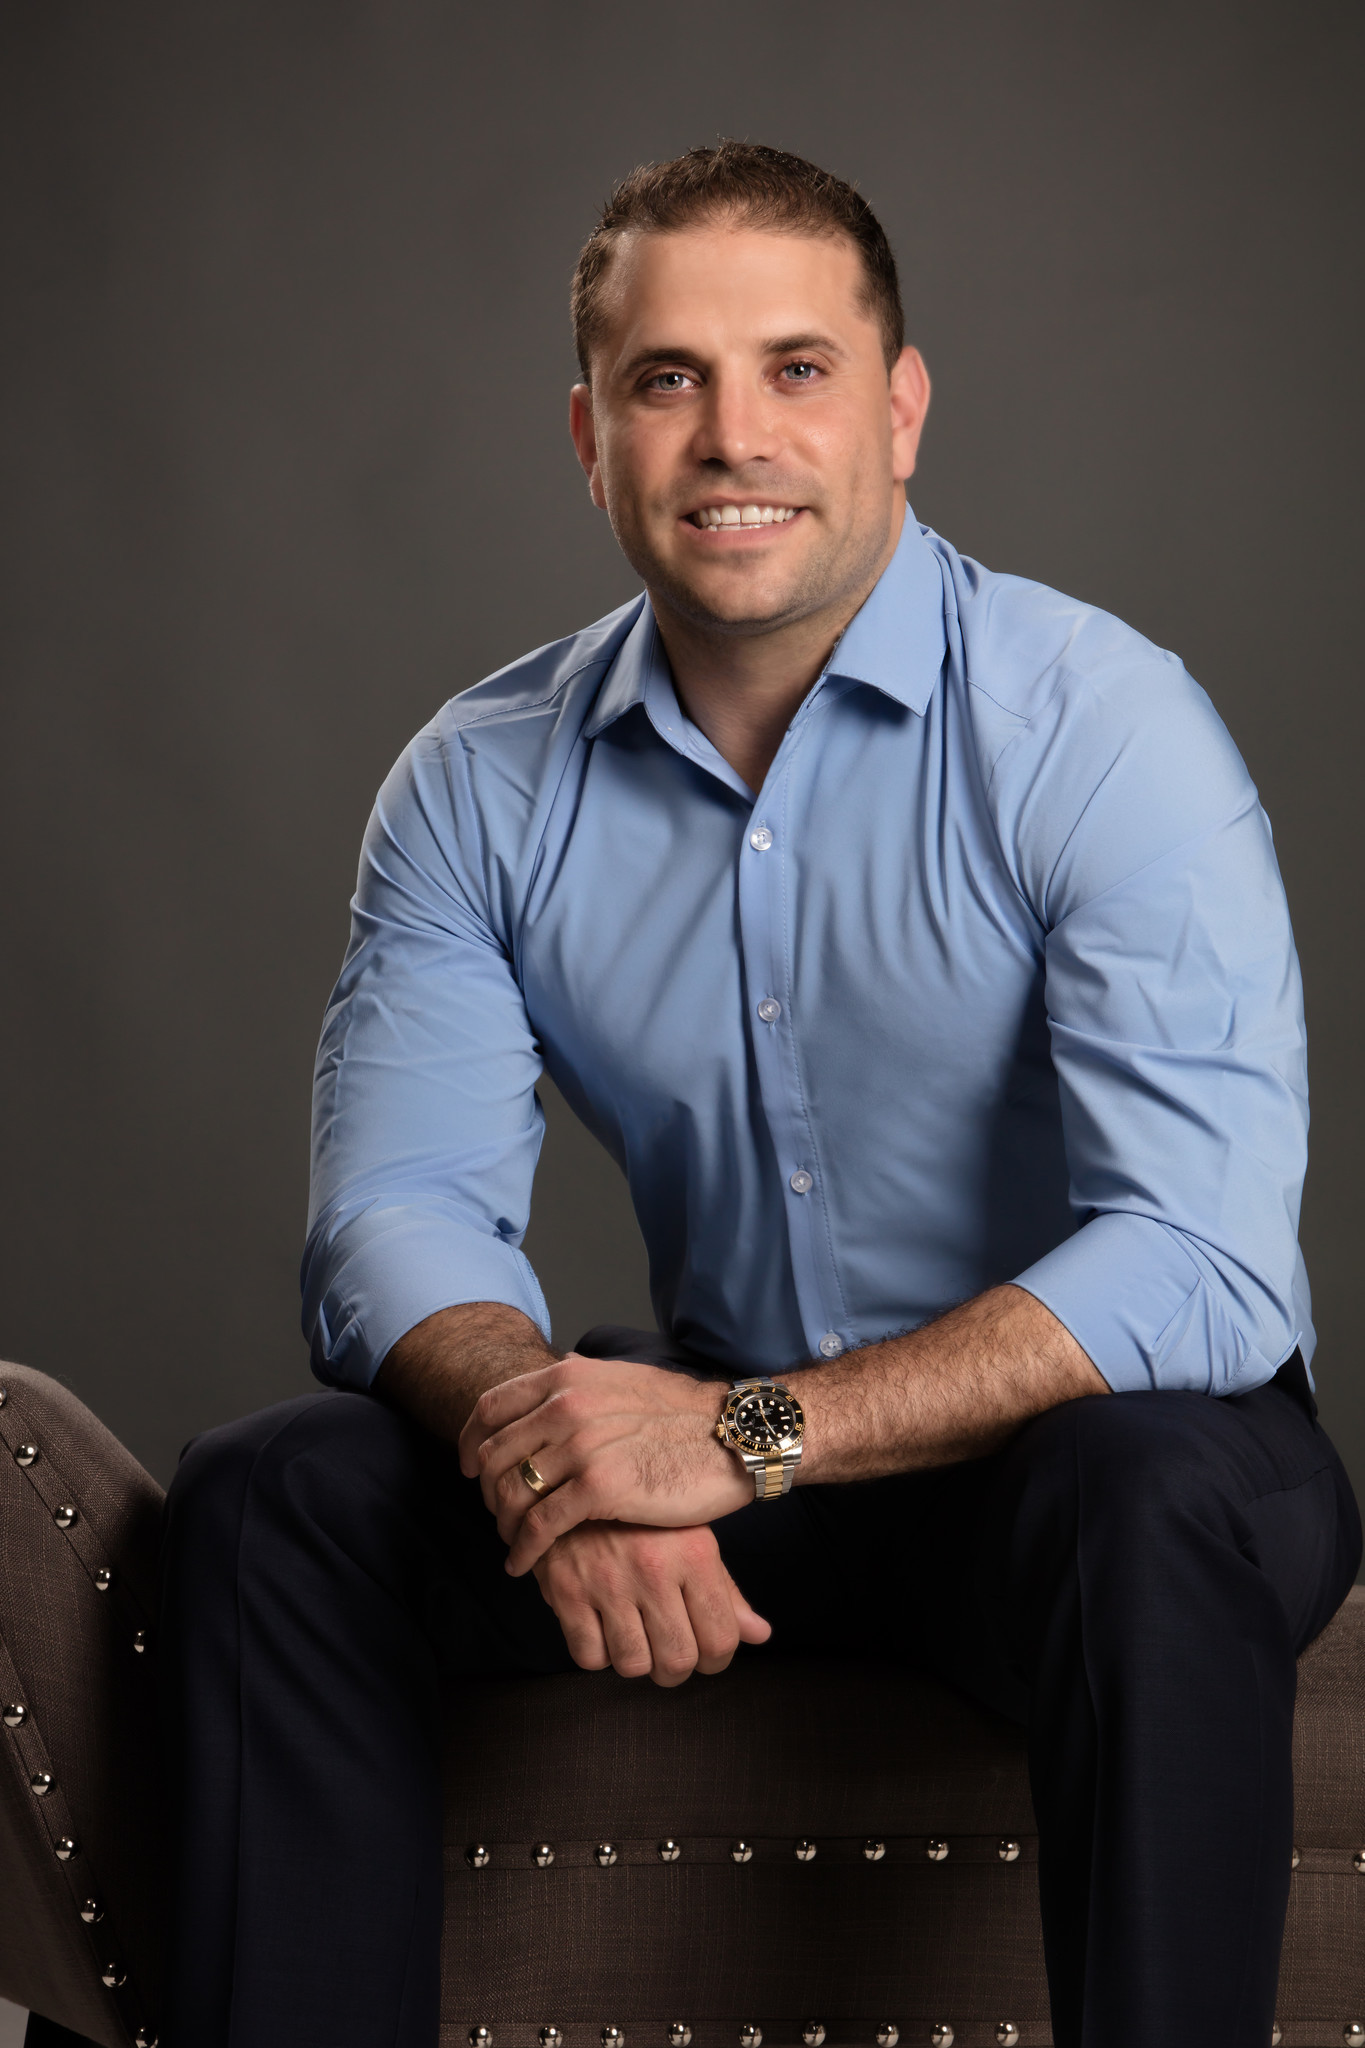 adam kayce appointed as vice president of home show management